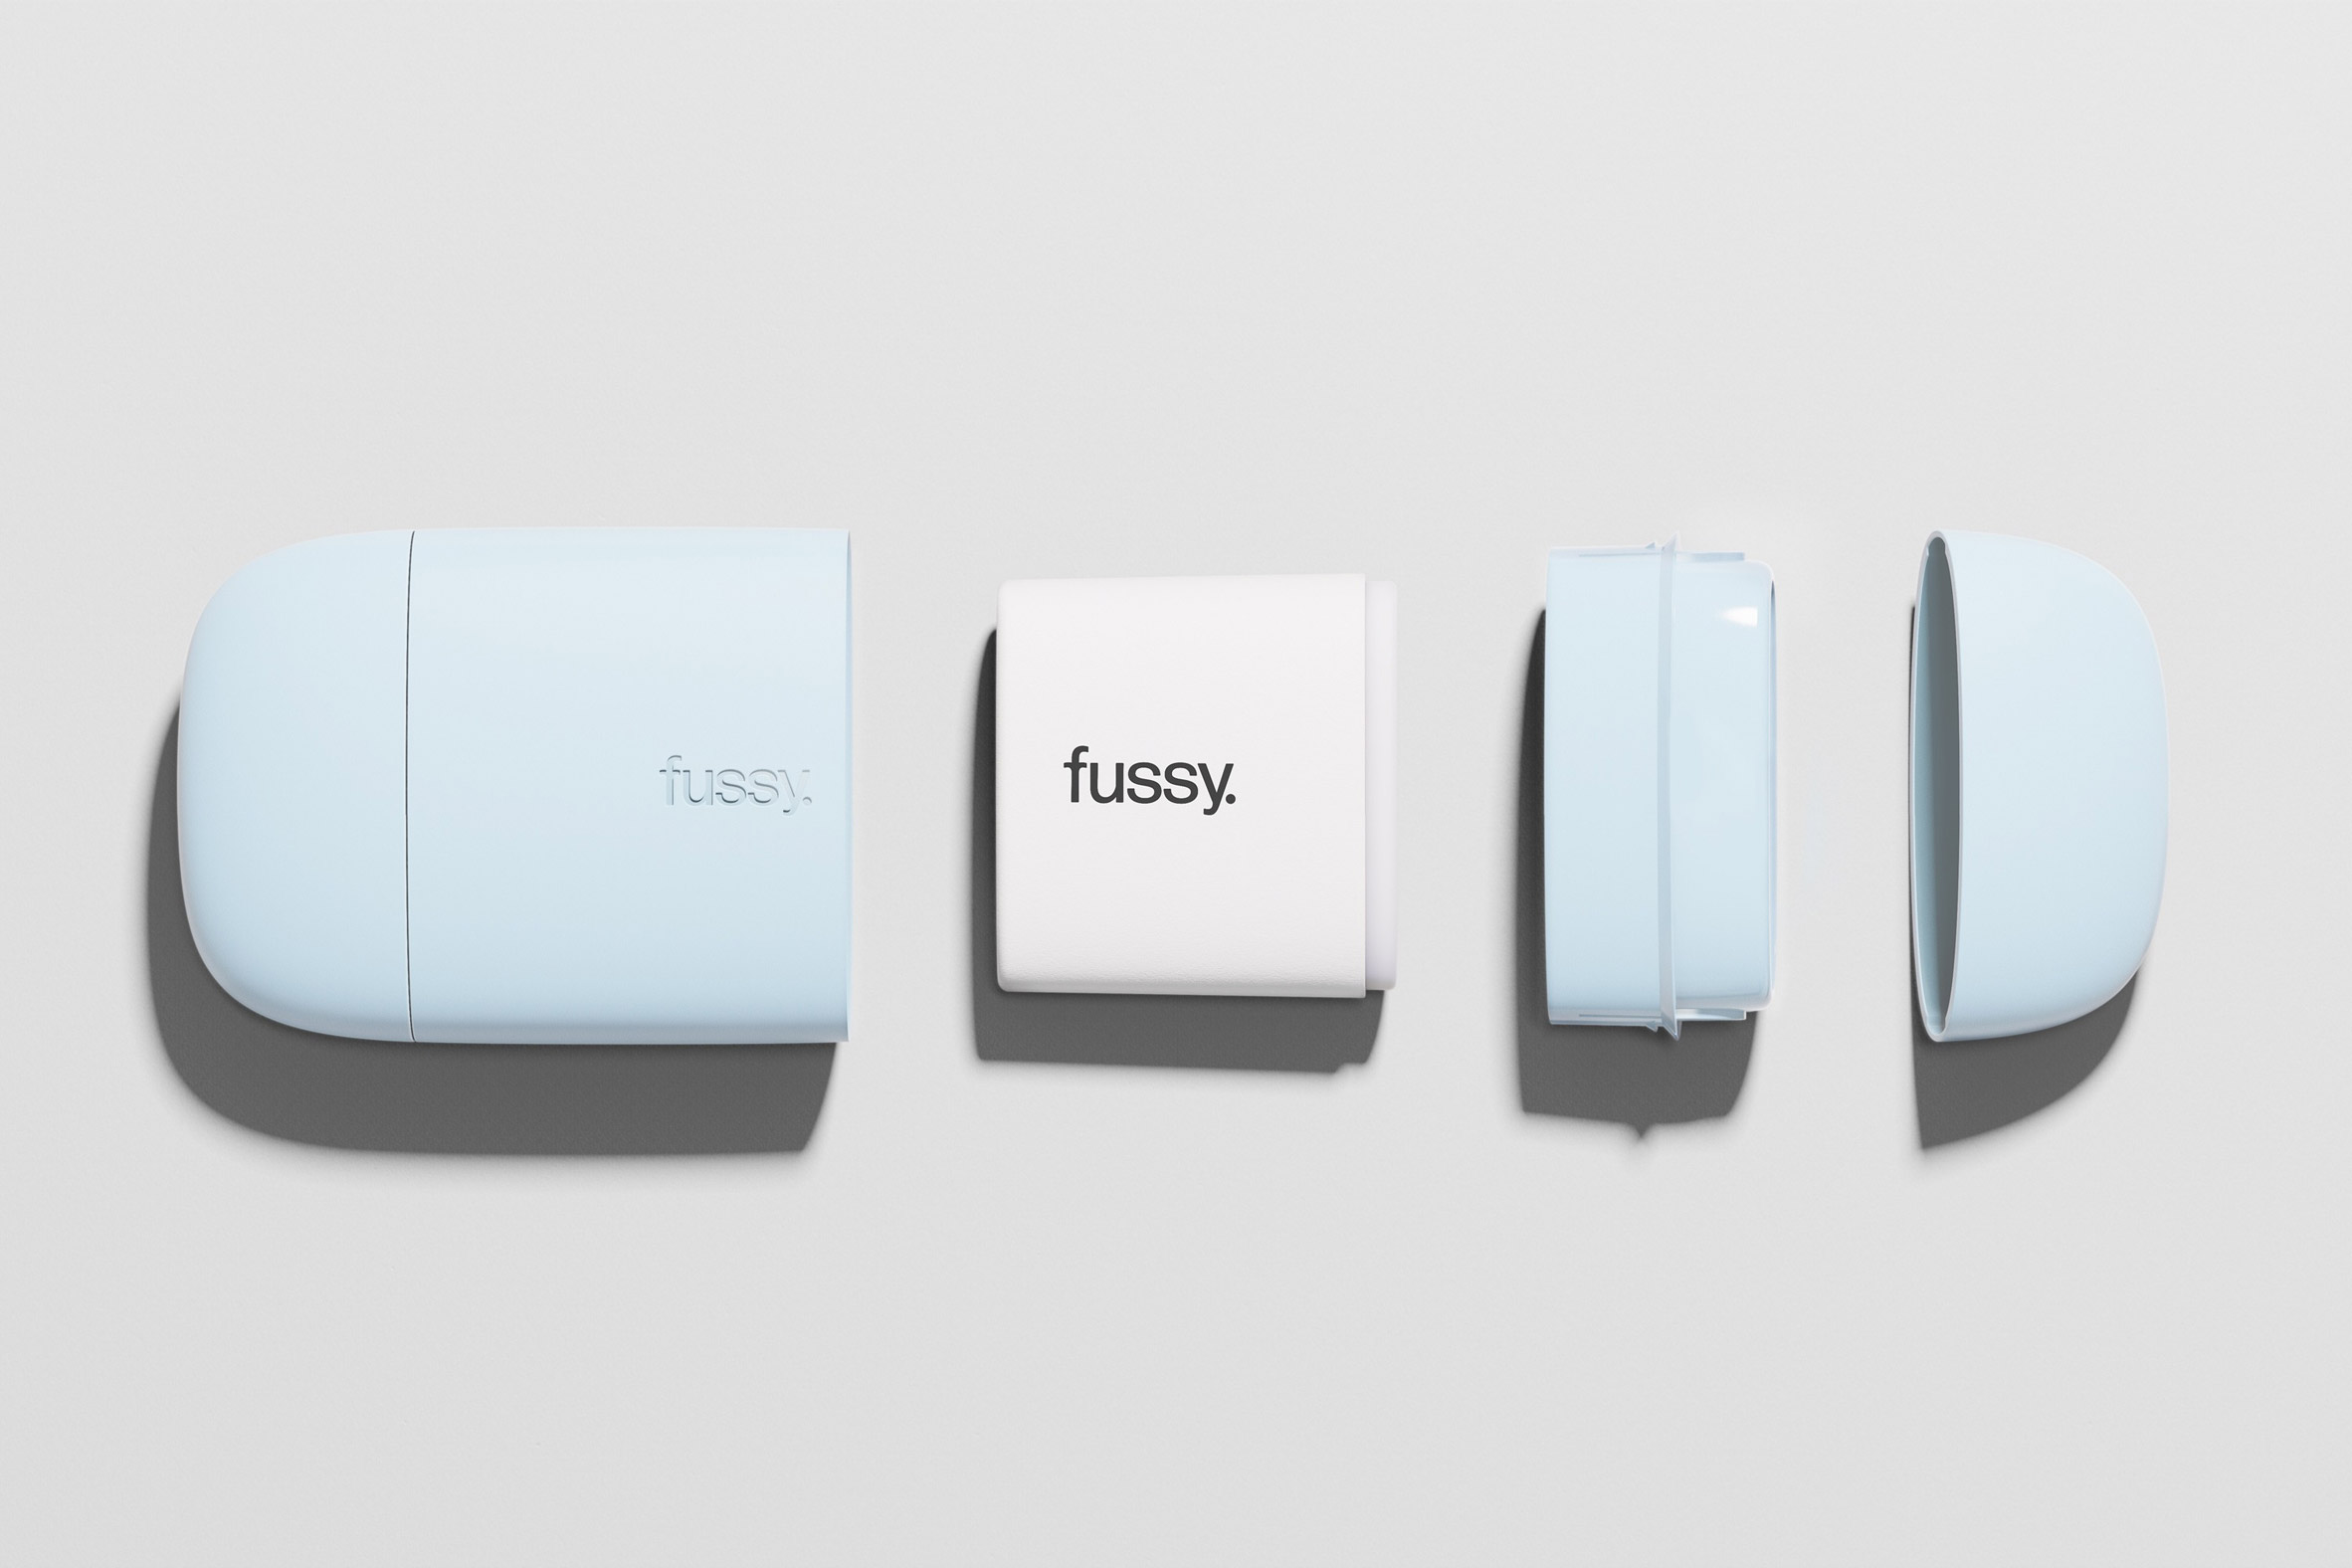 Components of Fussy deodorant by Blond